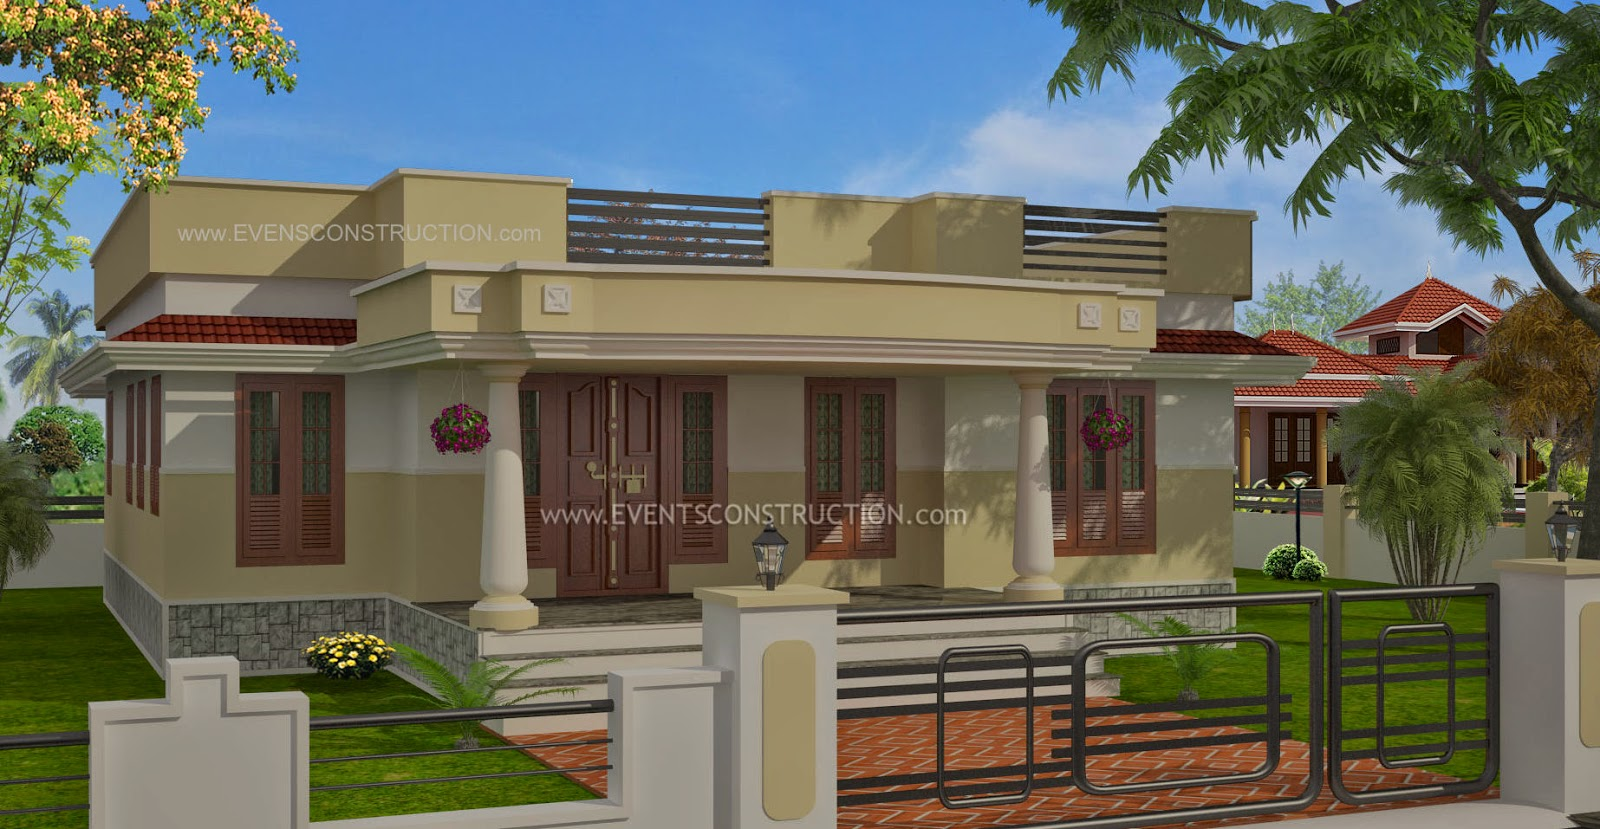 Evens construction pvt ltd single floor house flat roof for Flat roof elevation